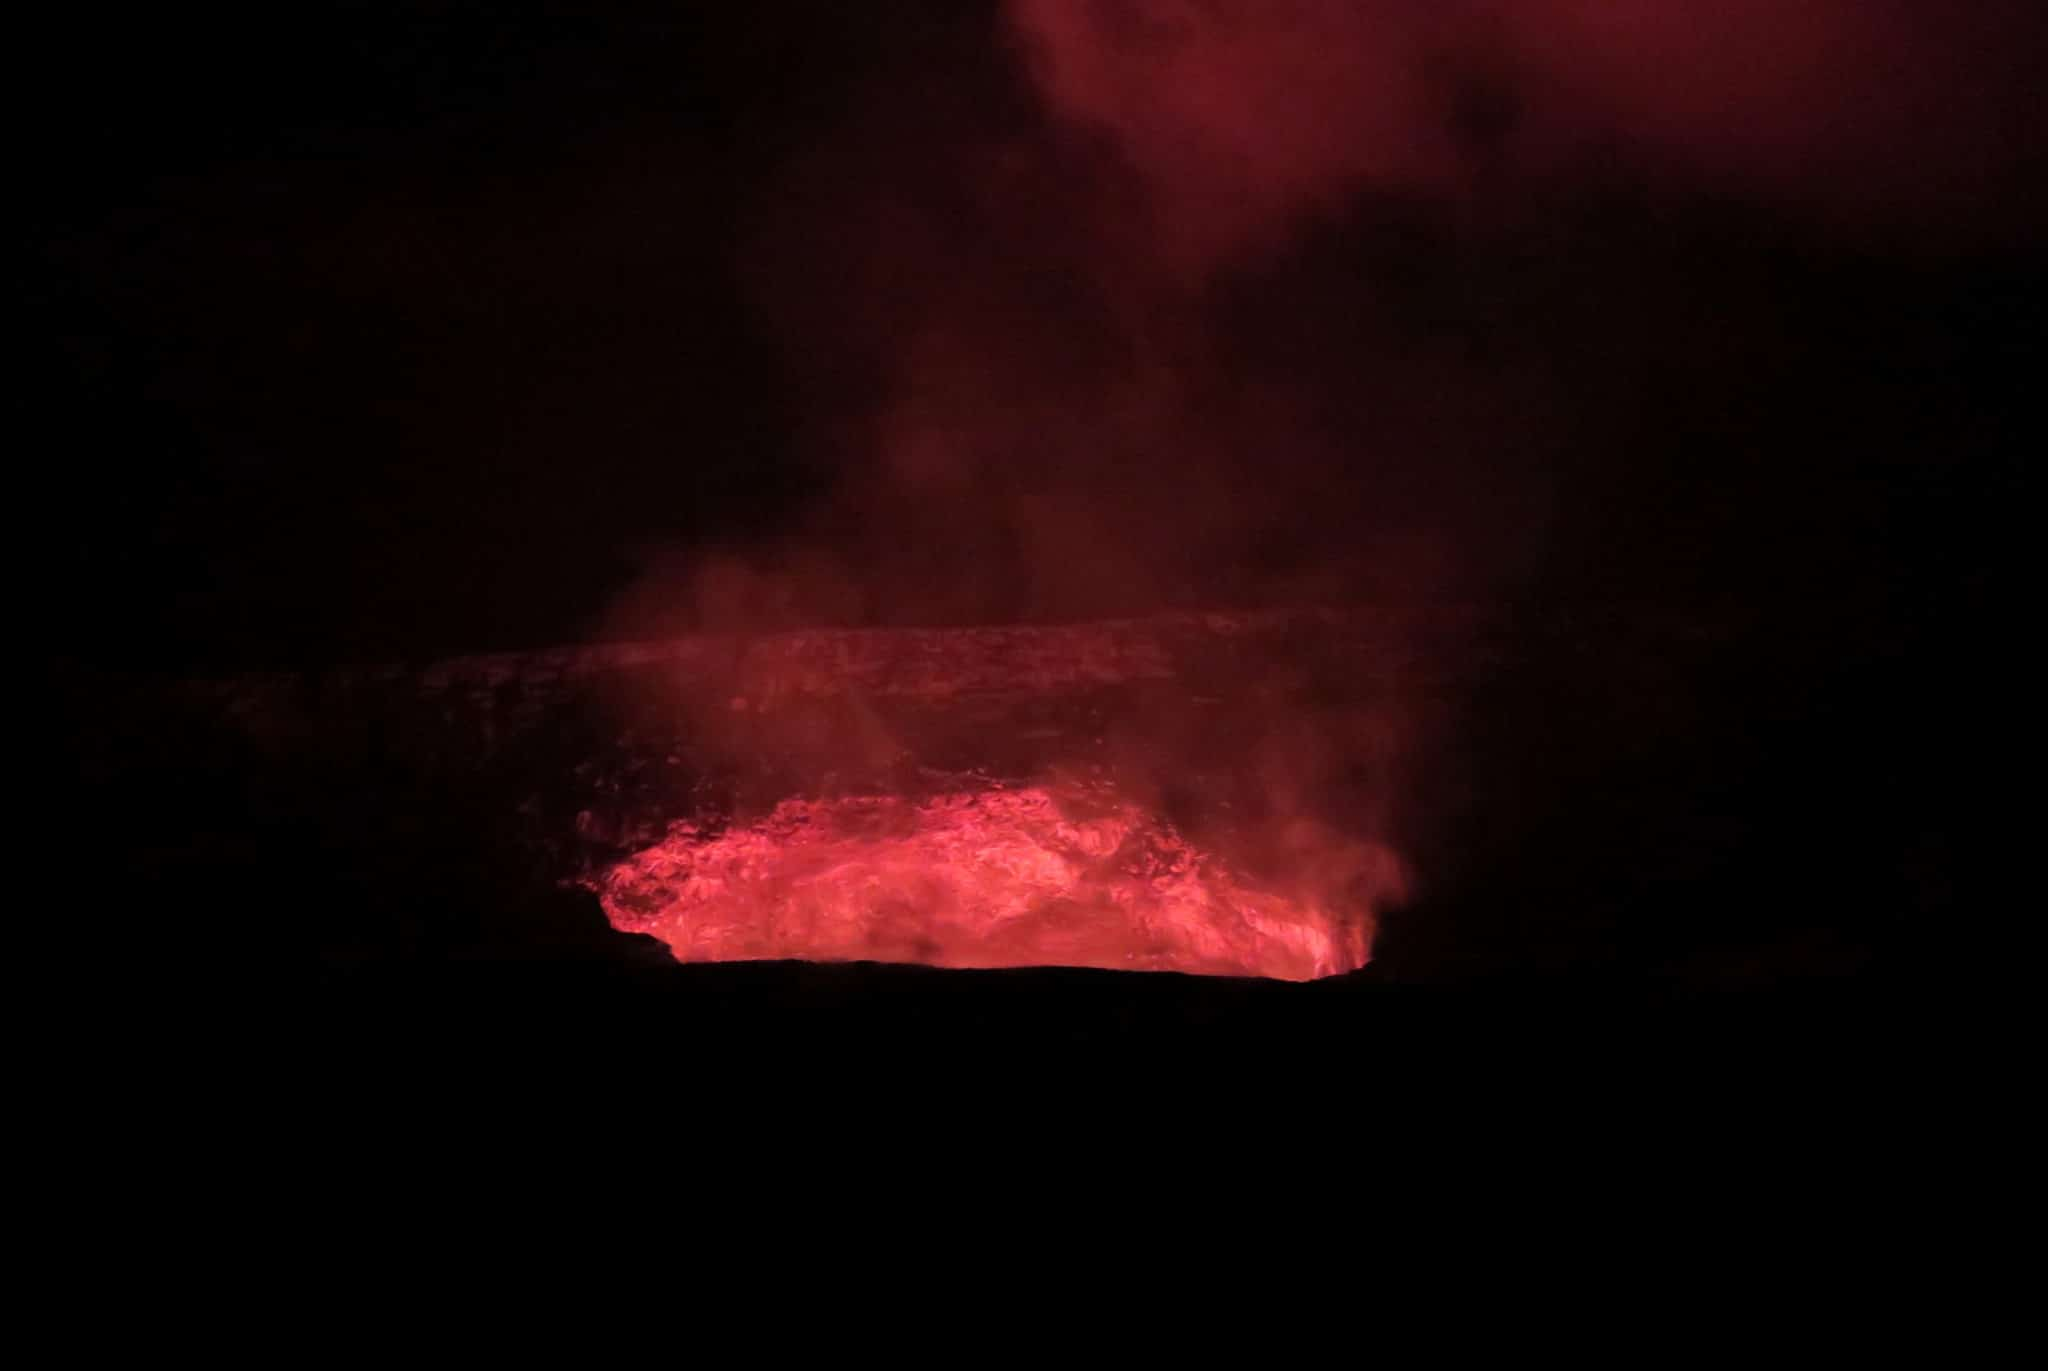 Kilauea Crater glowing at night Volcano National Park Big Island Hawaii